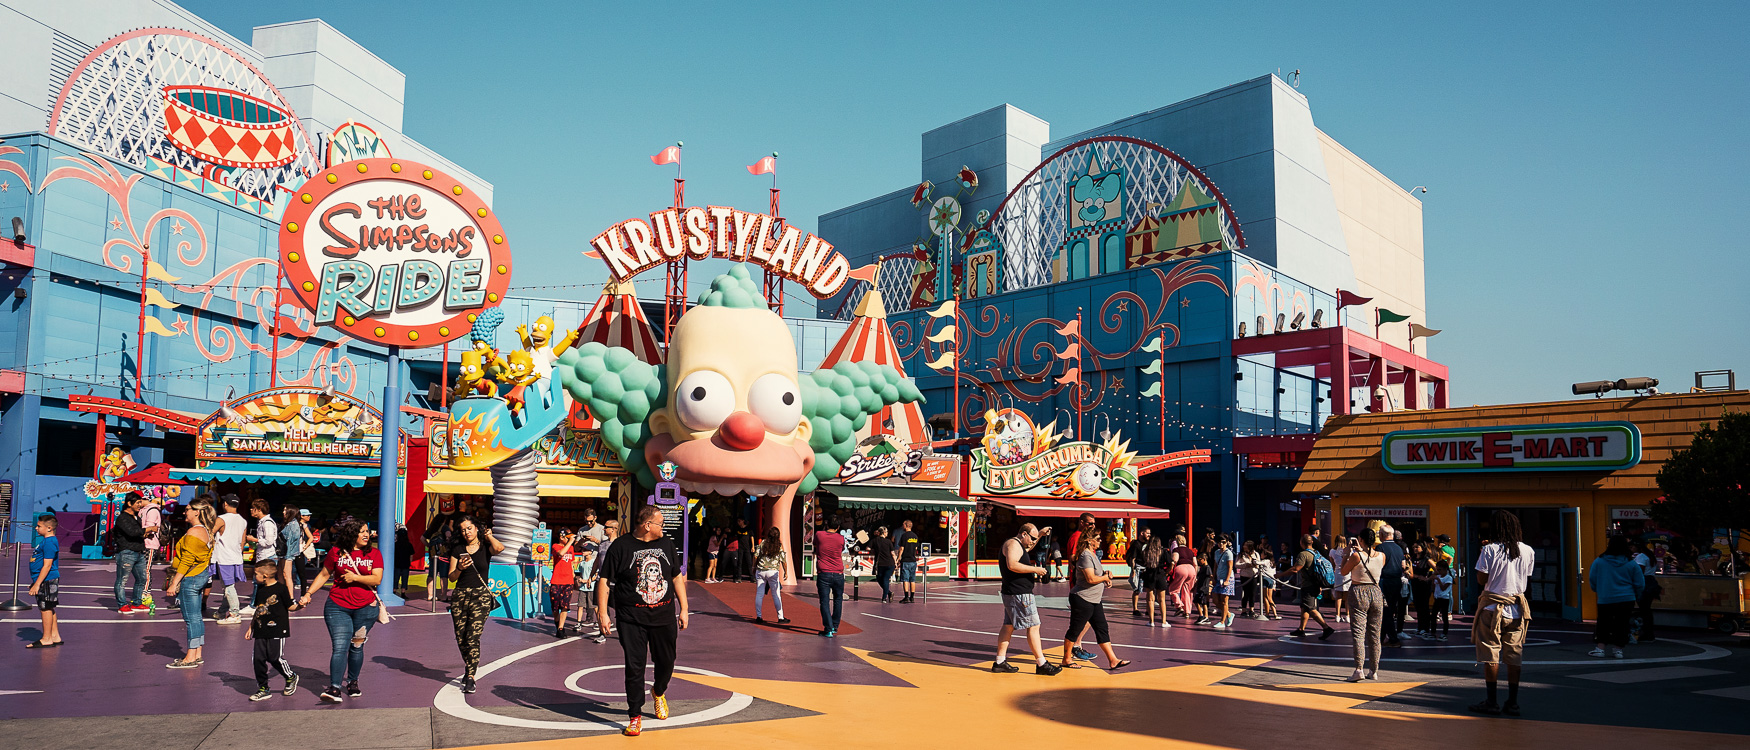 universal-studios-hollywood-the-simpsons-ride